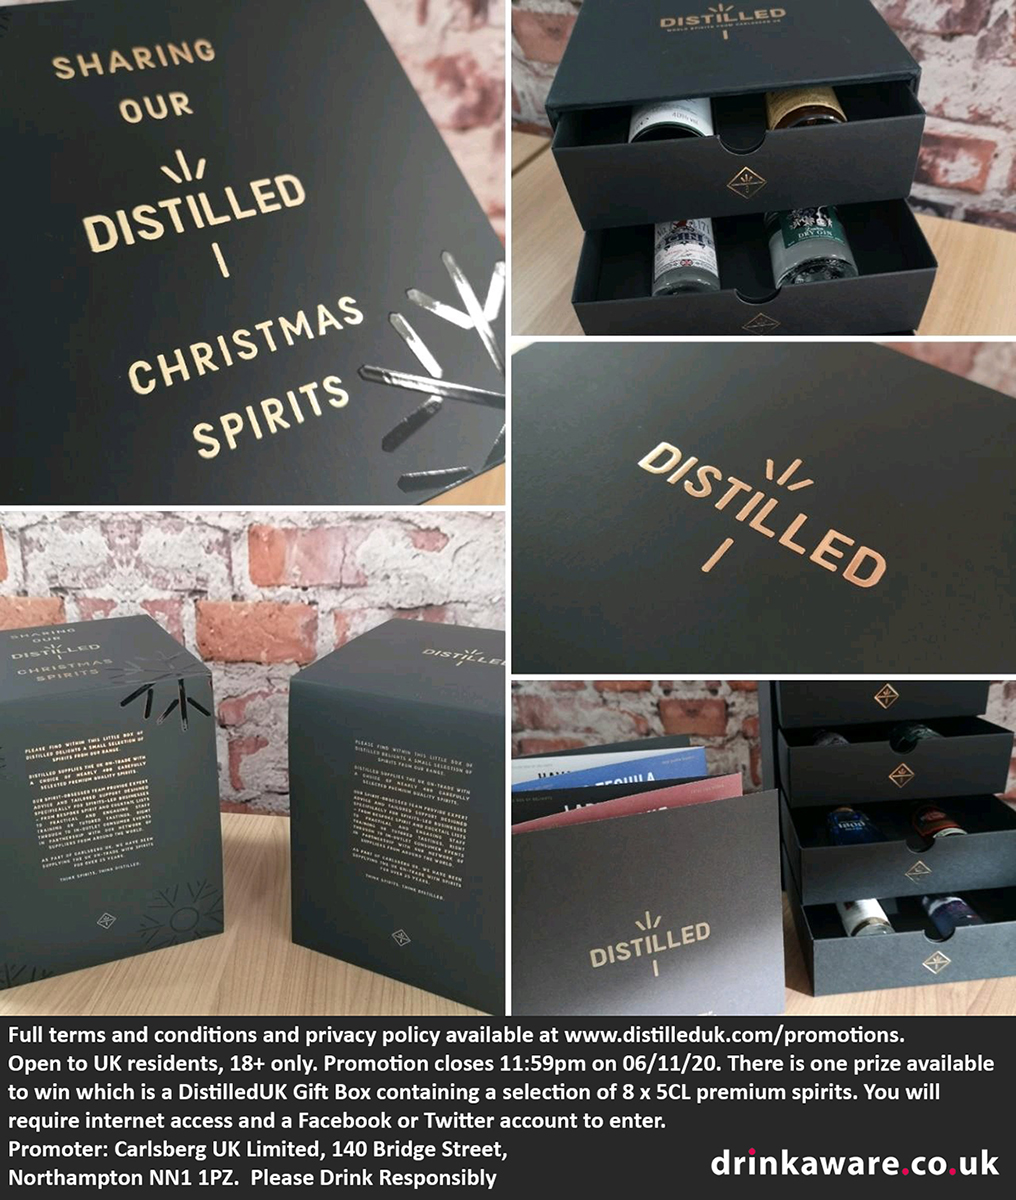 Want to try some fantastic spirits from our carefully selected range? We can help with that. Simply LIKE & FOLLOW our page for your chance to win a DISTILLED gift box filled with, miniature bottles of spirits. Enjoy responsibly. #win #cocktail T's & C's https://t.co/bZ4AxtcBSB https://t.co/IVrFeYsbuZ